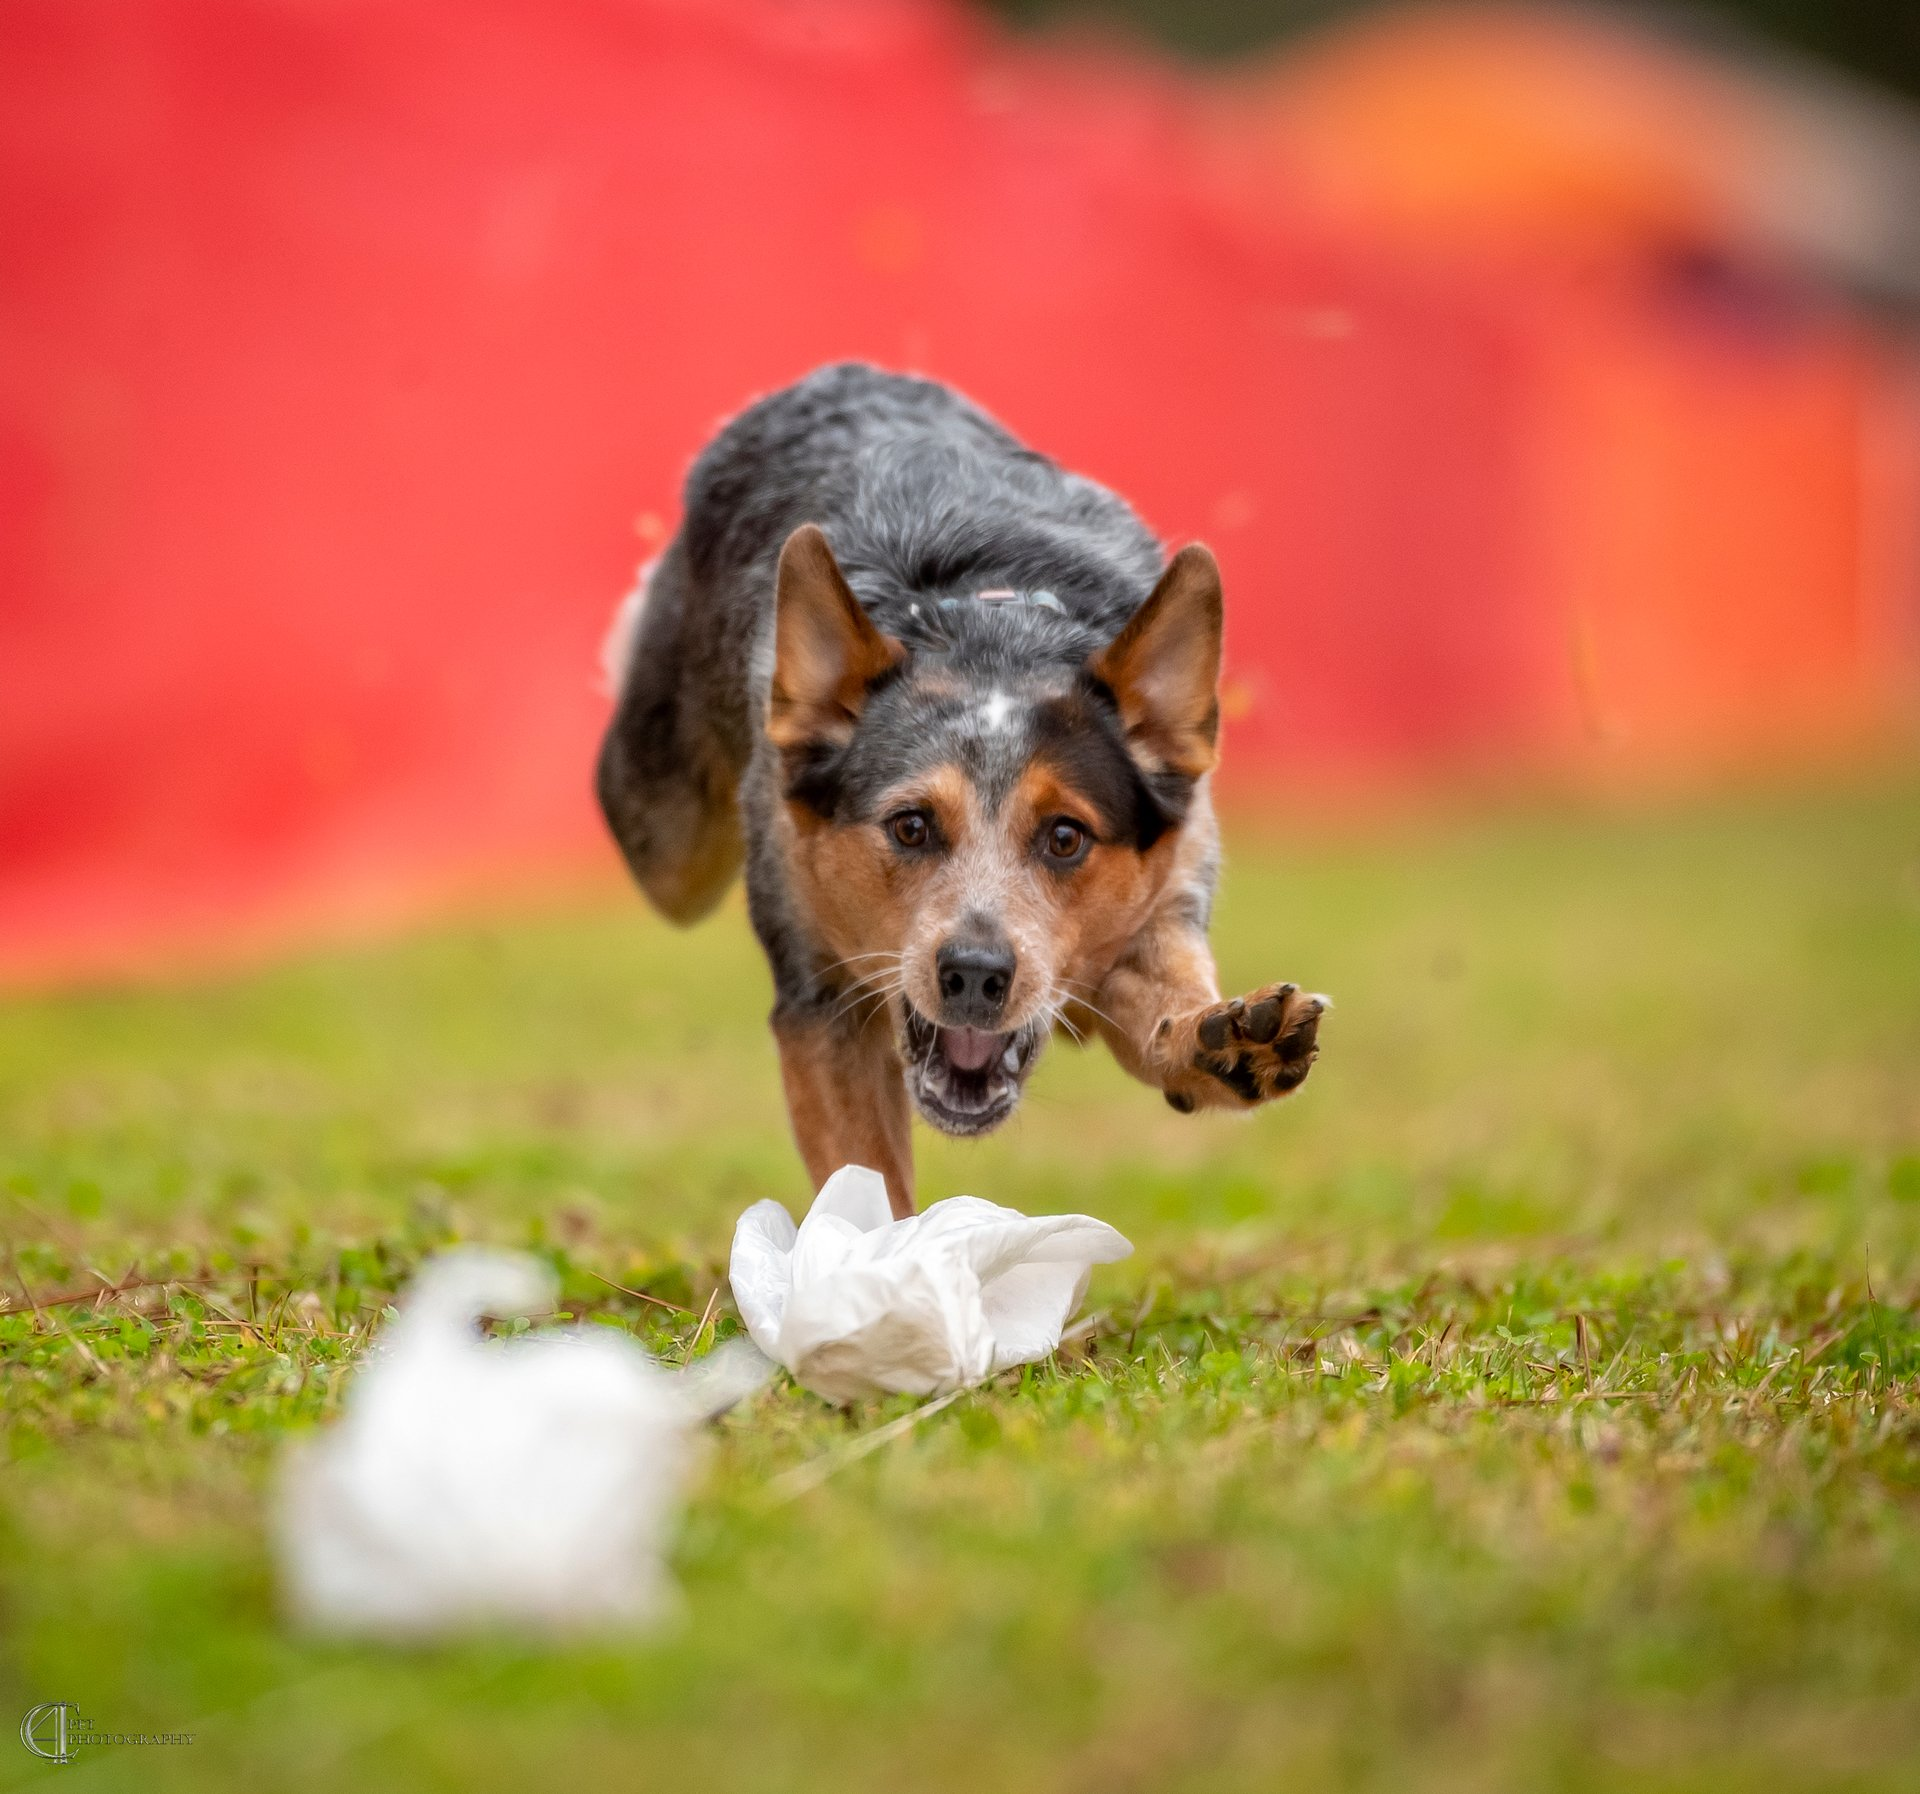 Connie Fore | C4 Pet Photography